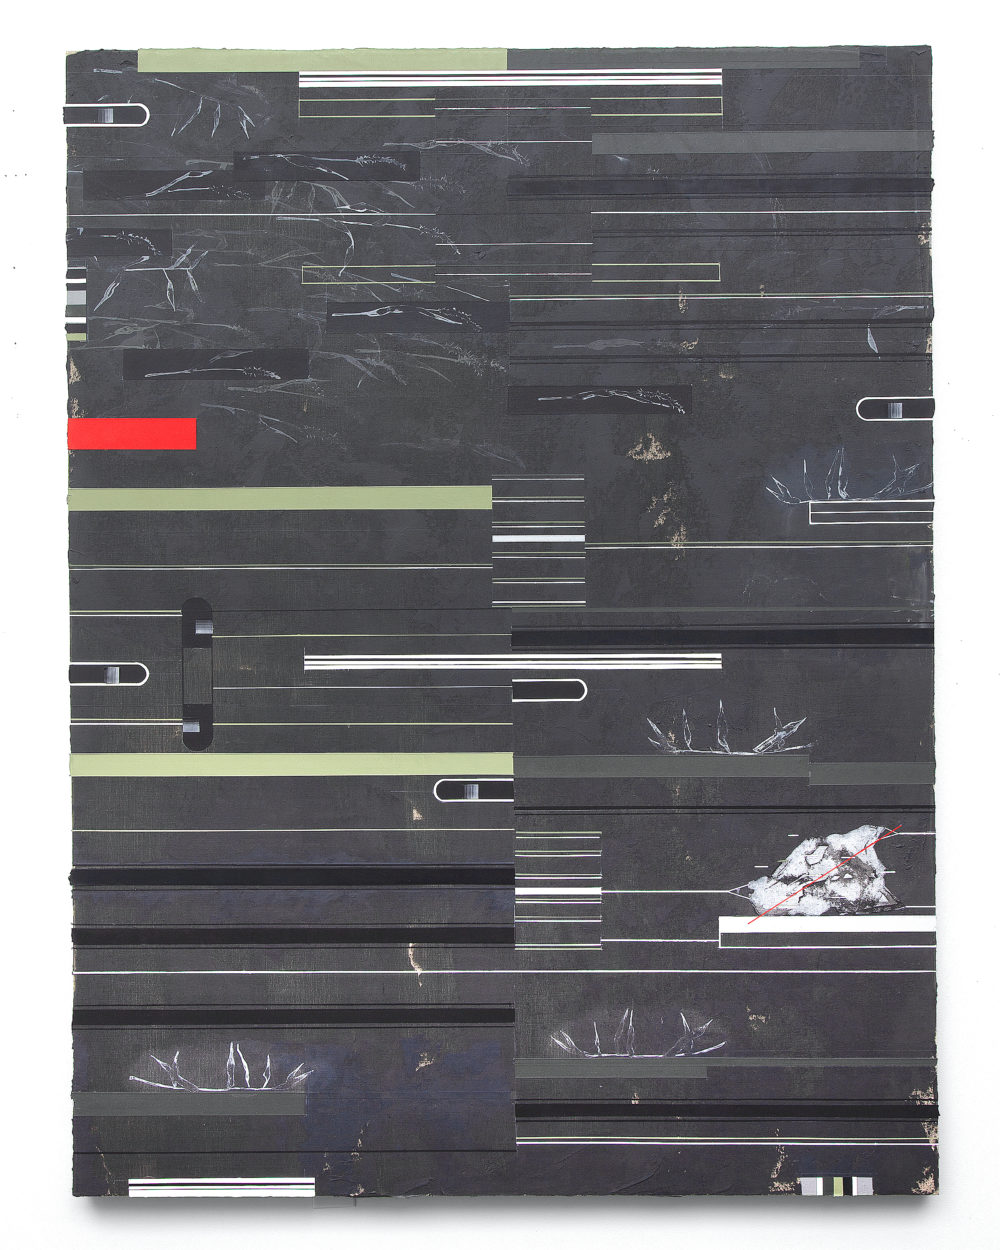 Dark abstract panting with horizontal lines and bands of color, especially red and light green.